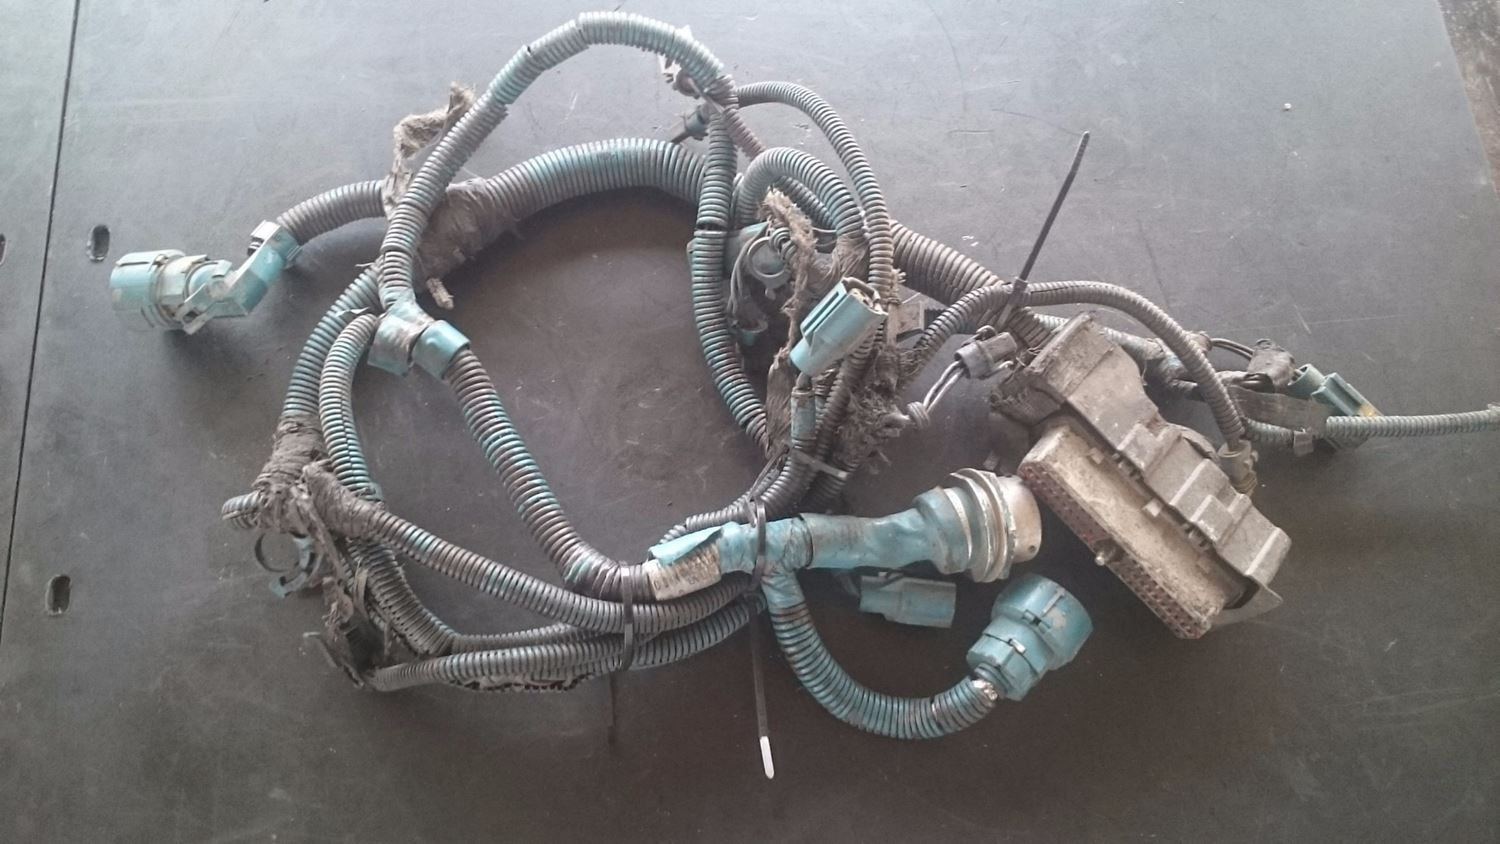 International N A Wiring Harnesses 80941471 F3EFYOCWqUJw_f?h=60&w=100&crop=auto wiring harnesses new and used parts american truck chrome international wiring harness at eliteediting.co